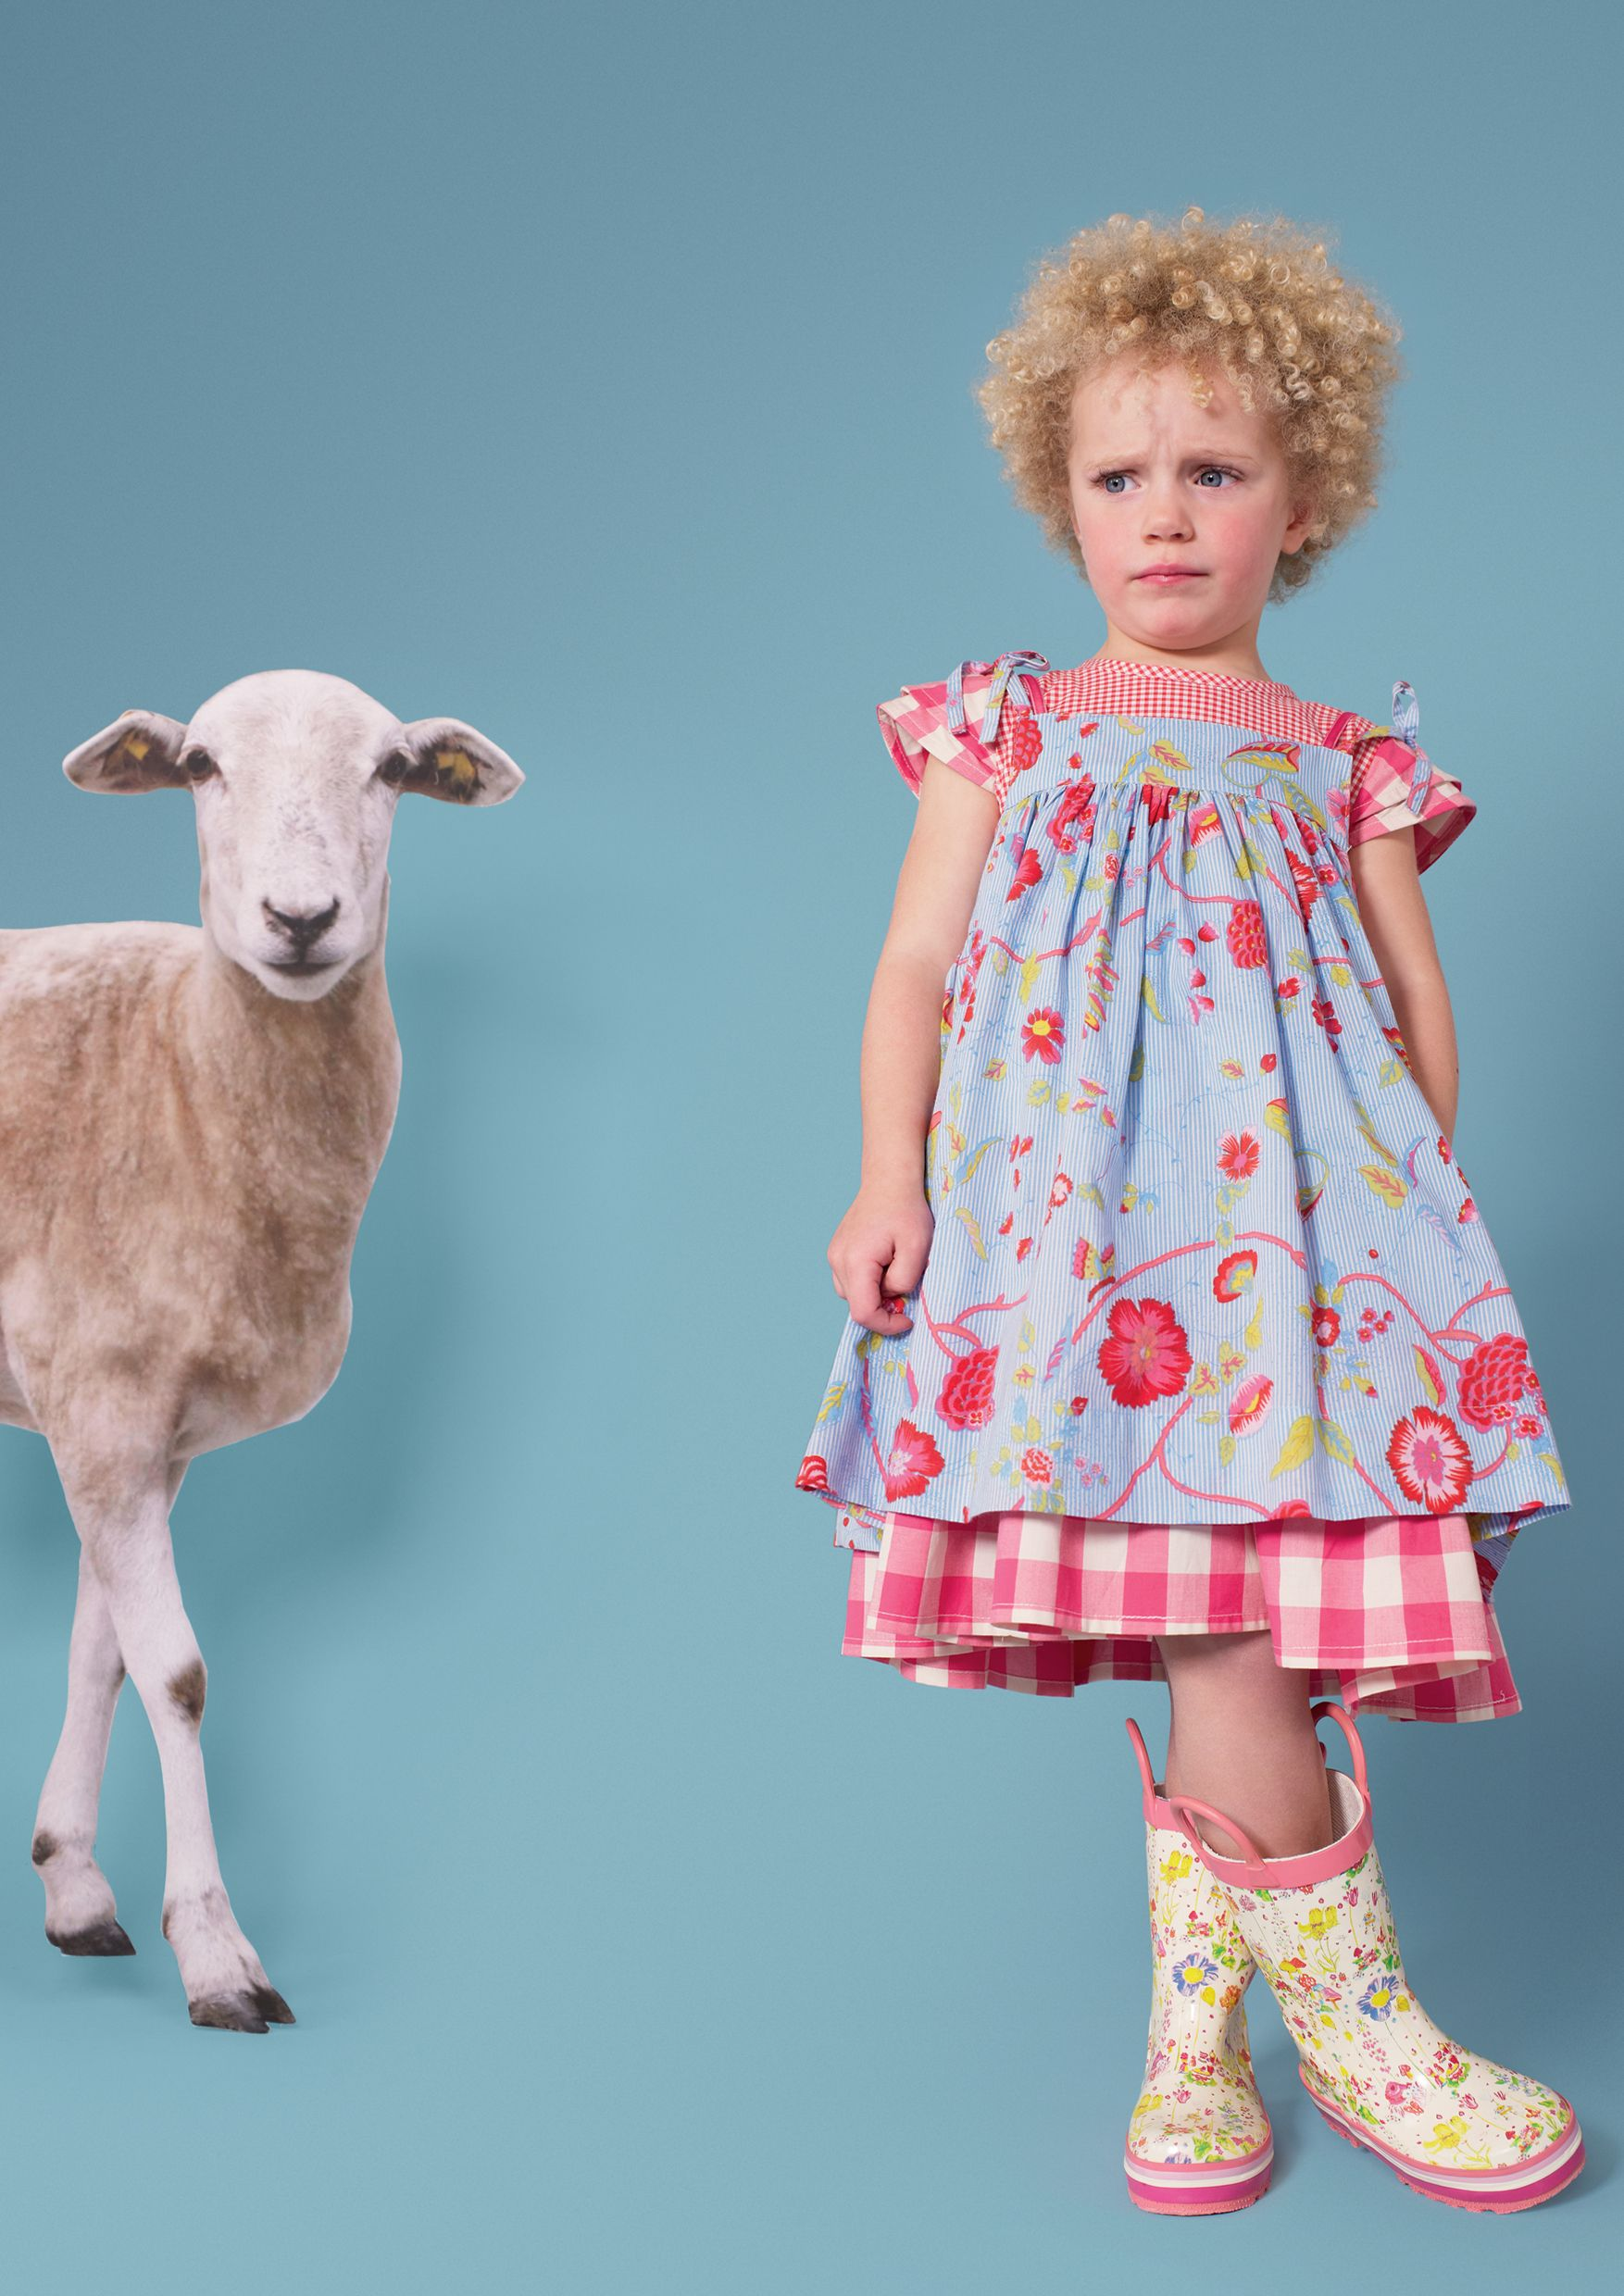 OILILY Children s Wear Spring Summer 2011 KINDERTJIE